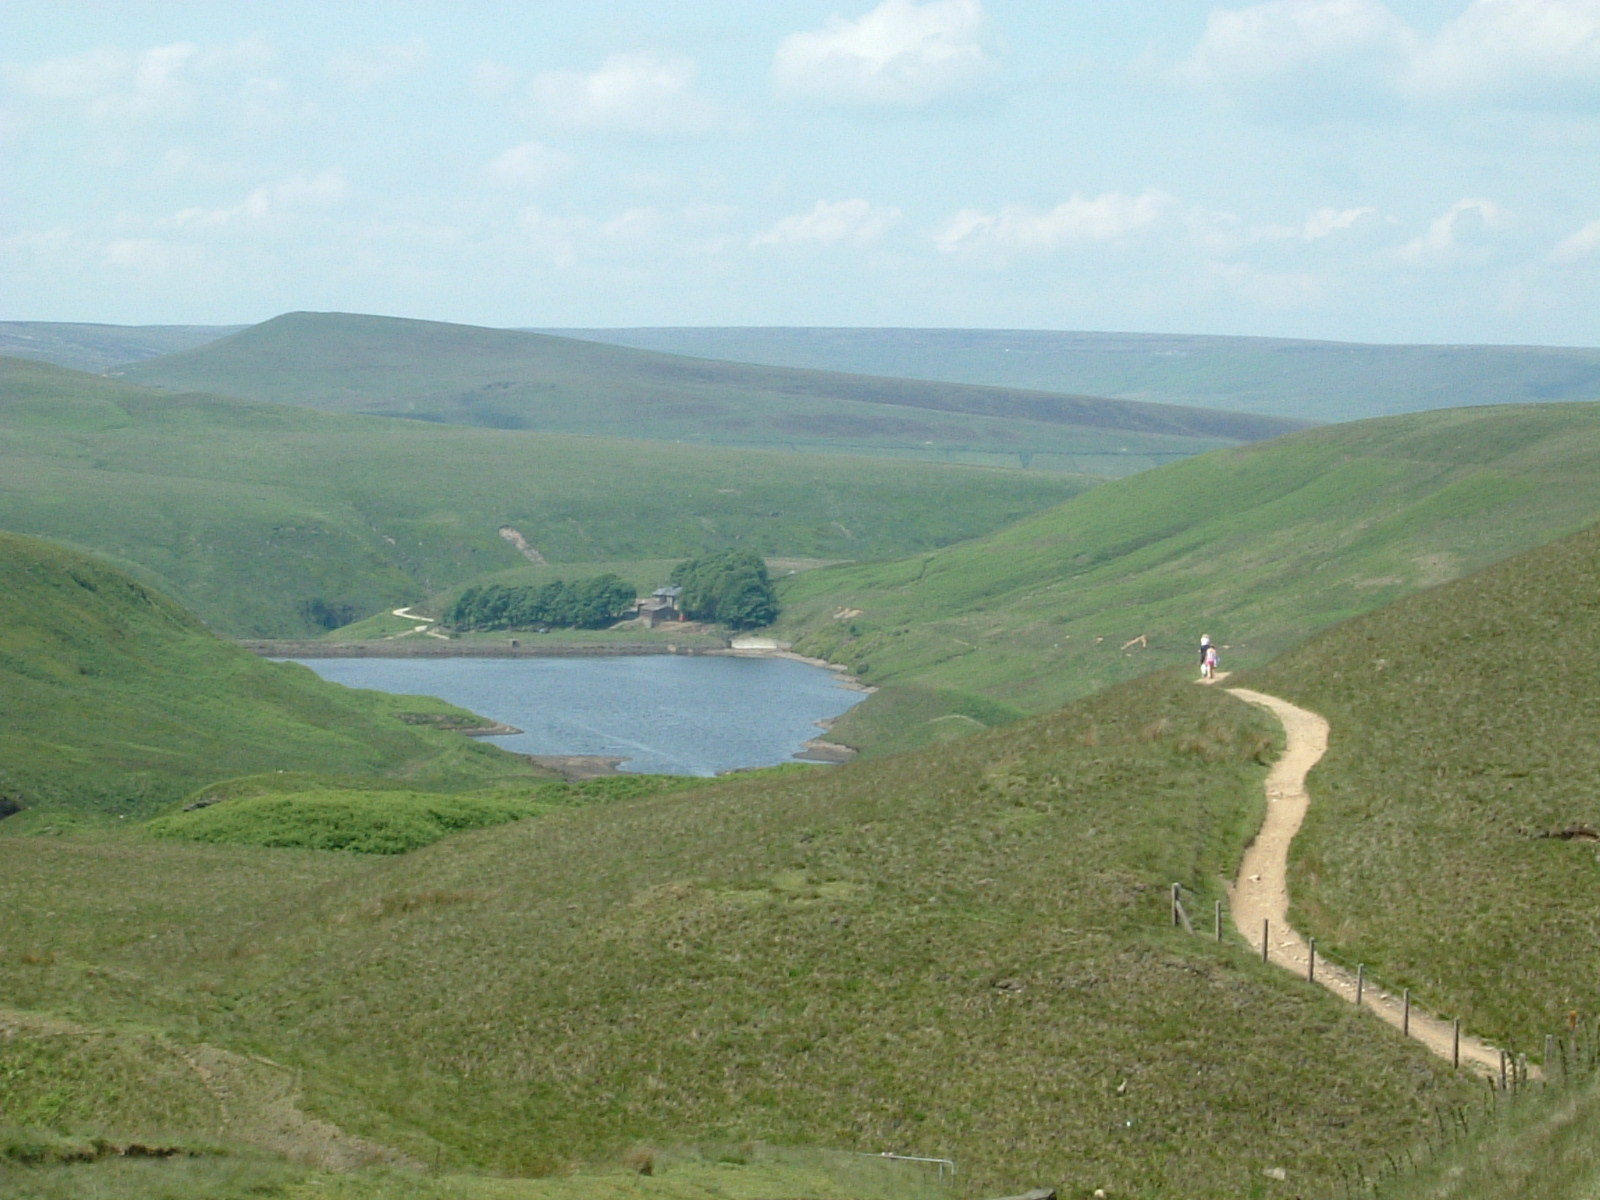 Walking through the reservoirs